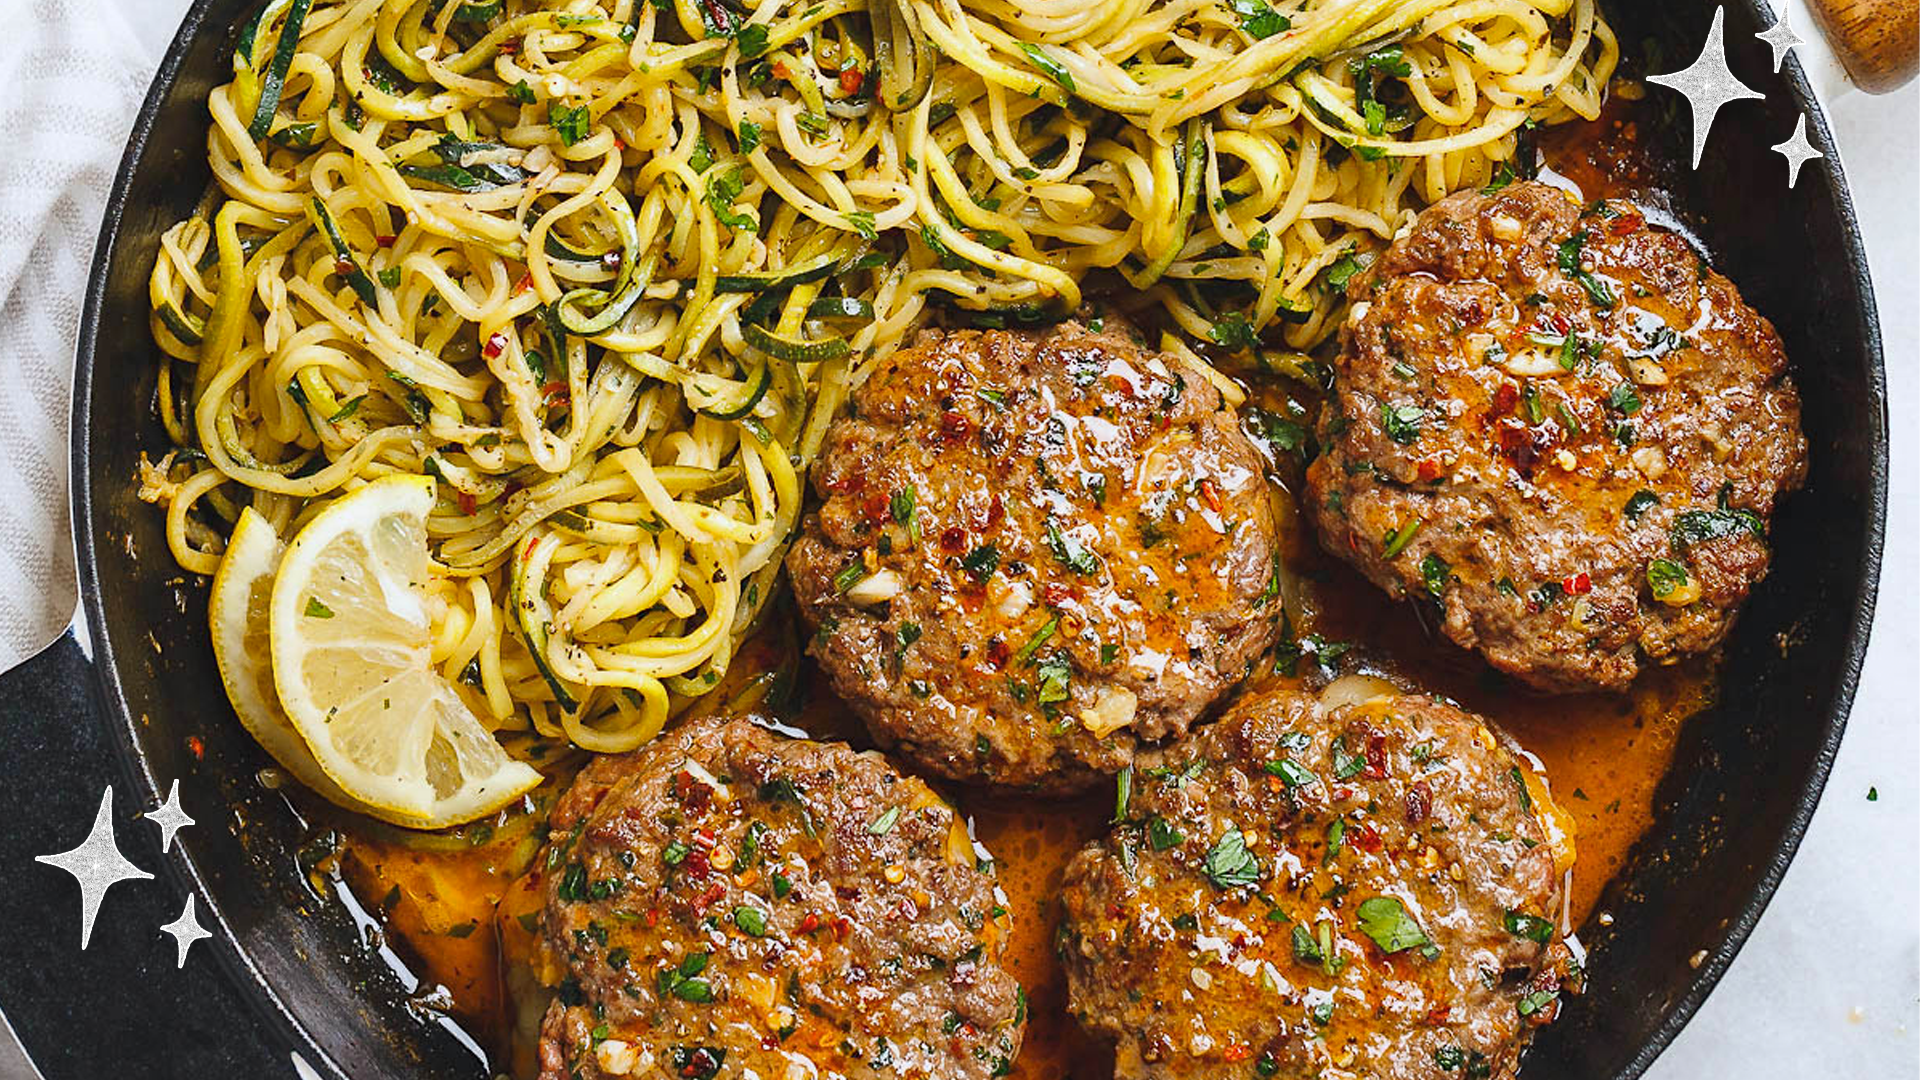 23 Easy Keto Recipes So Tasty, You'd Never Guess They're Super Low-Carb